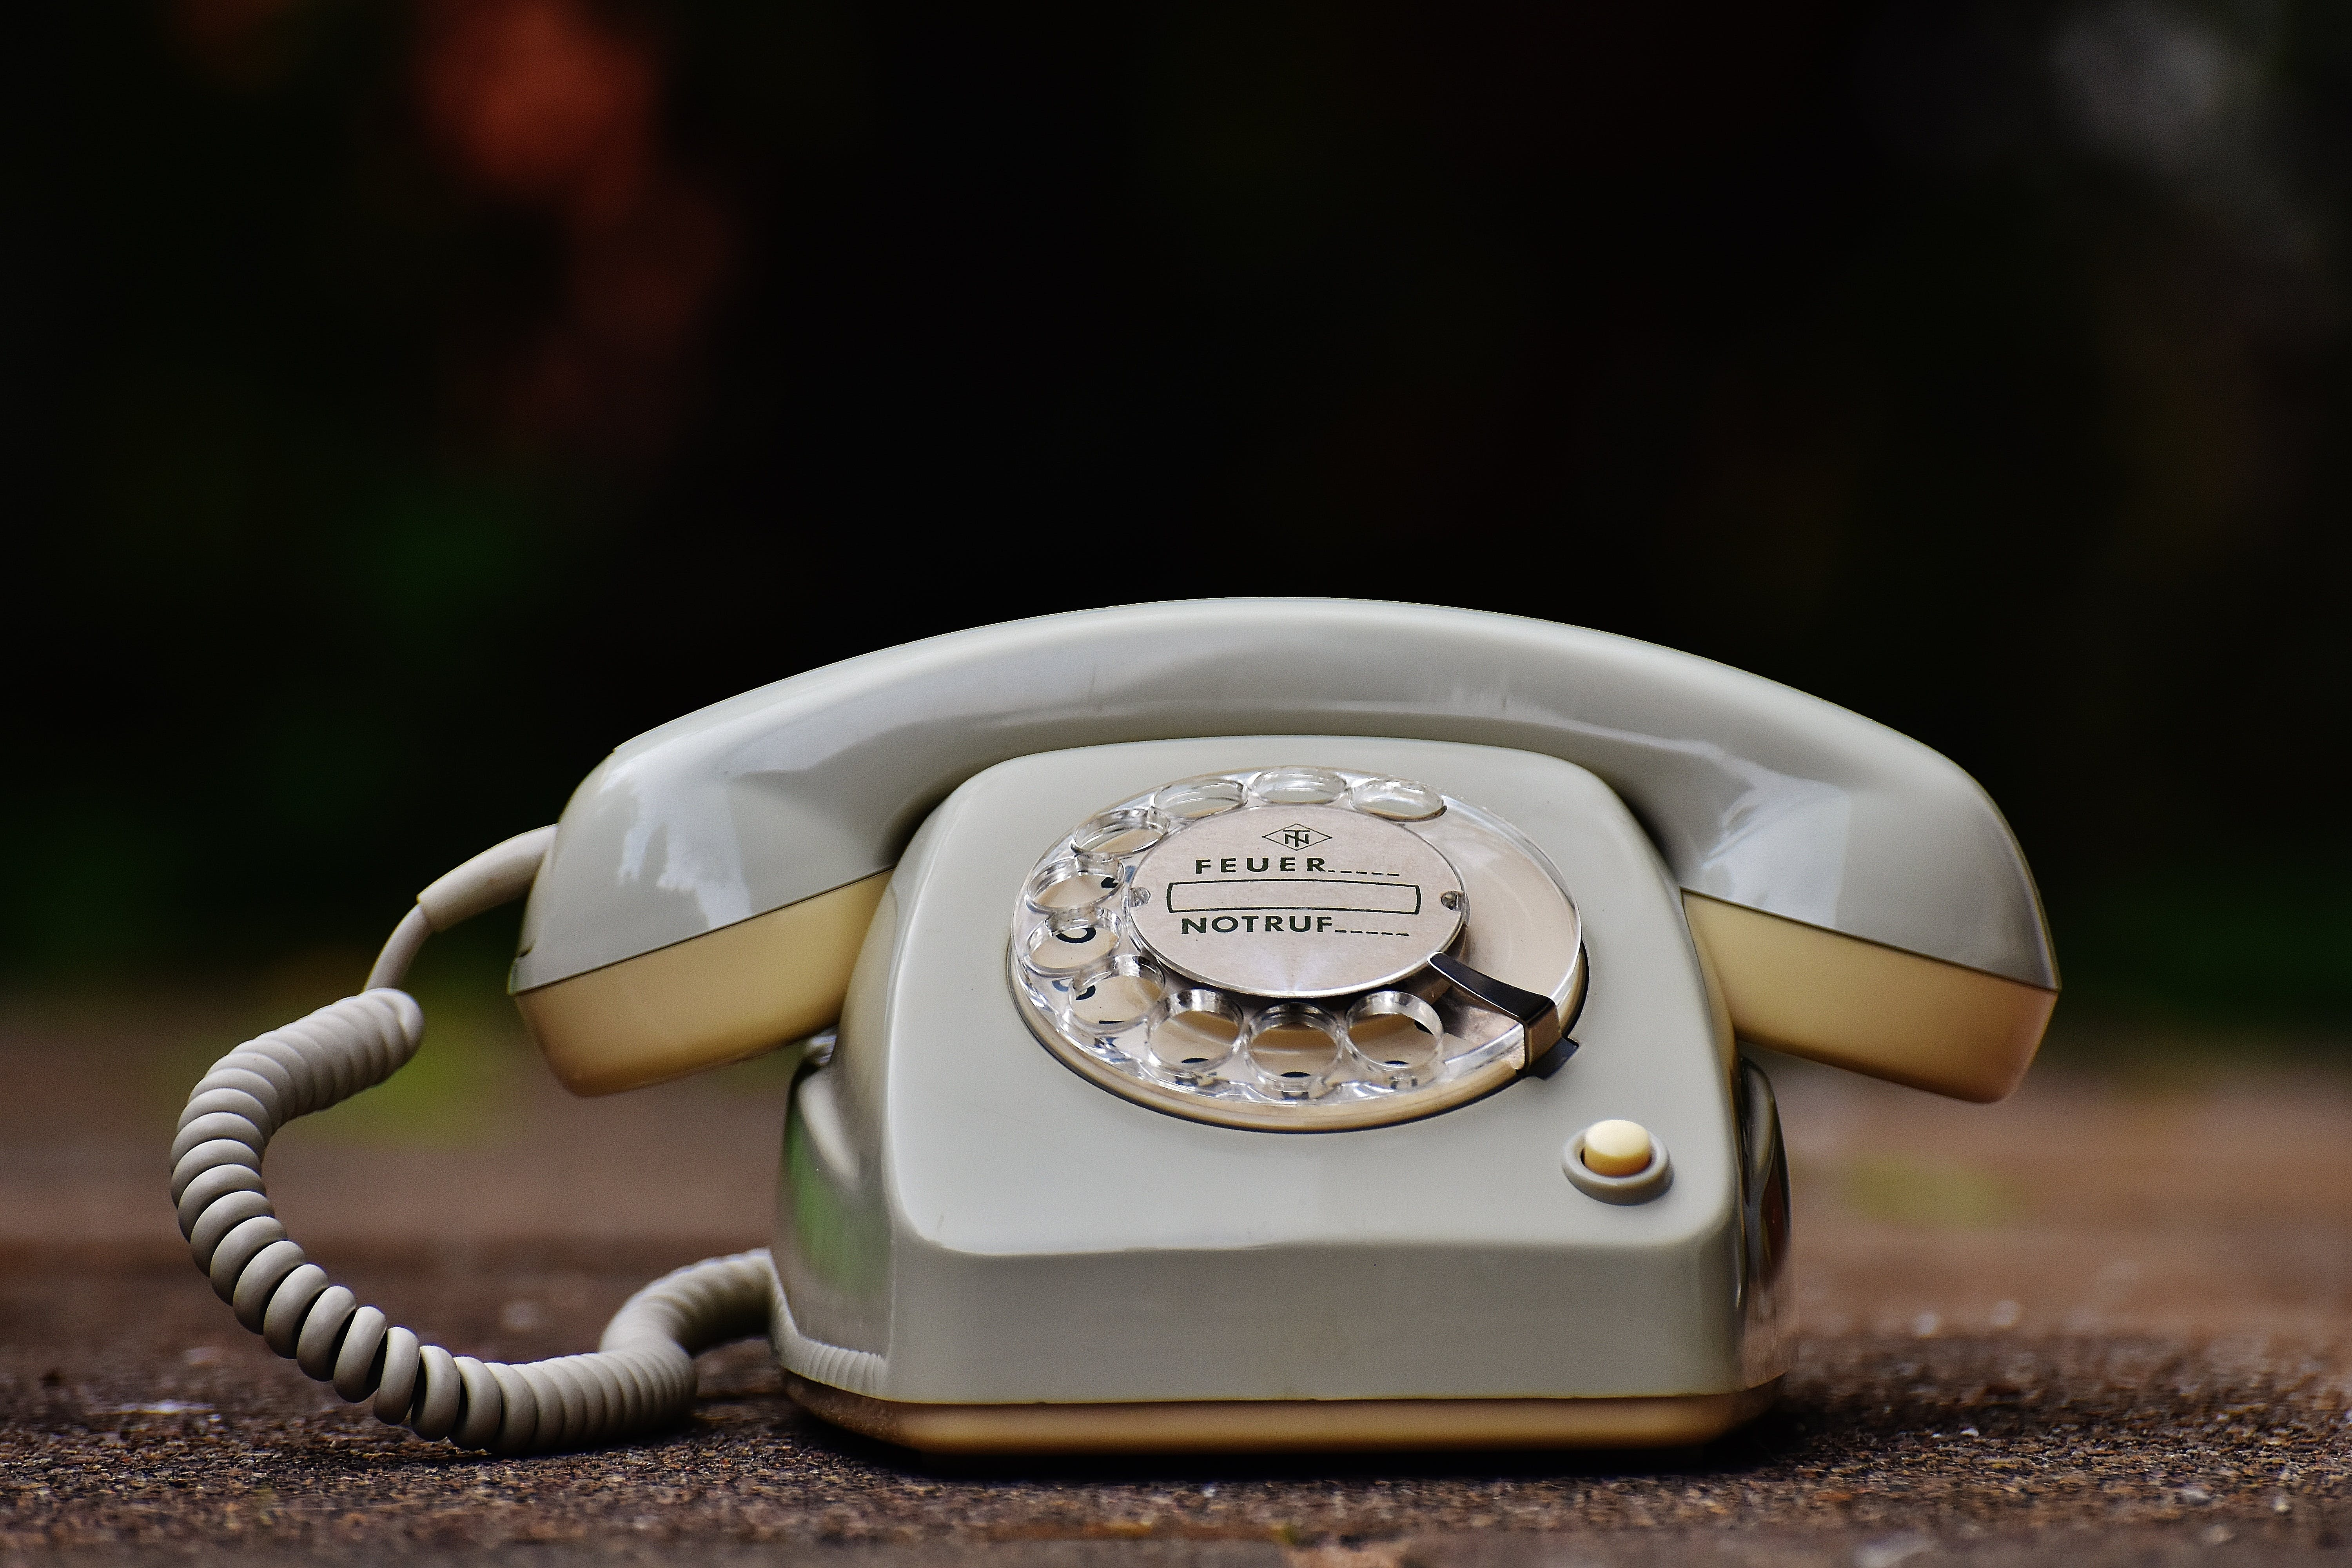 Gray Rotary Telephone on Brown Surface